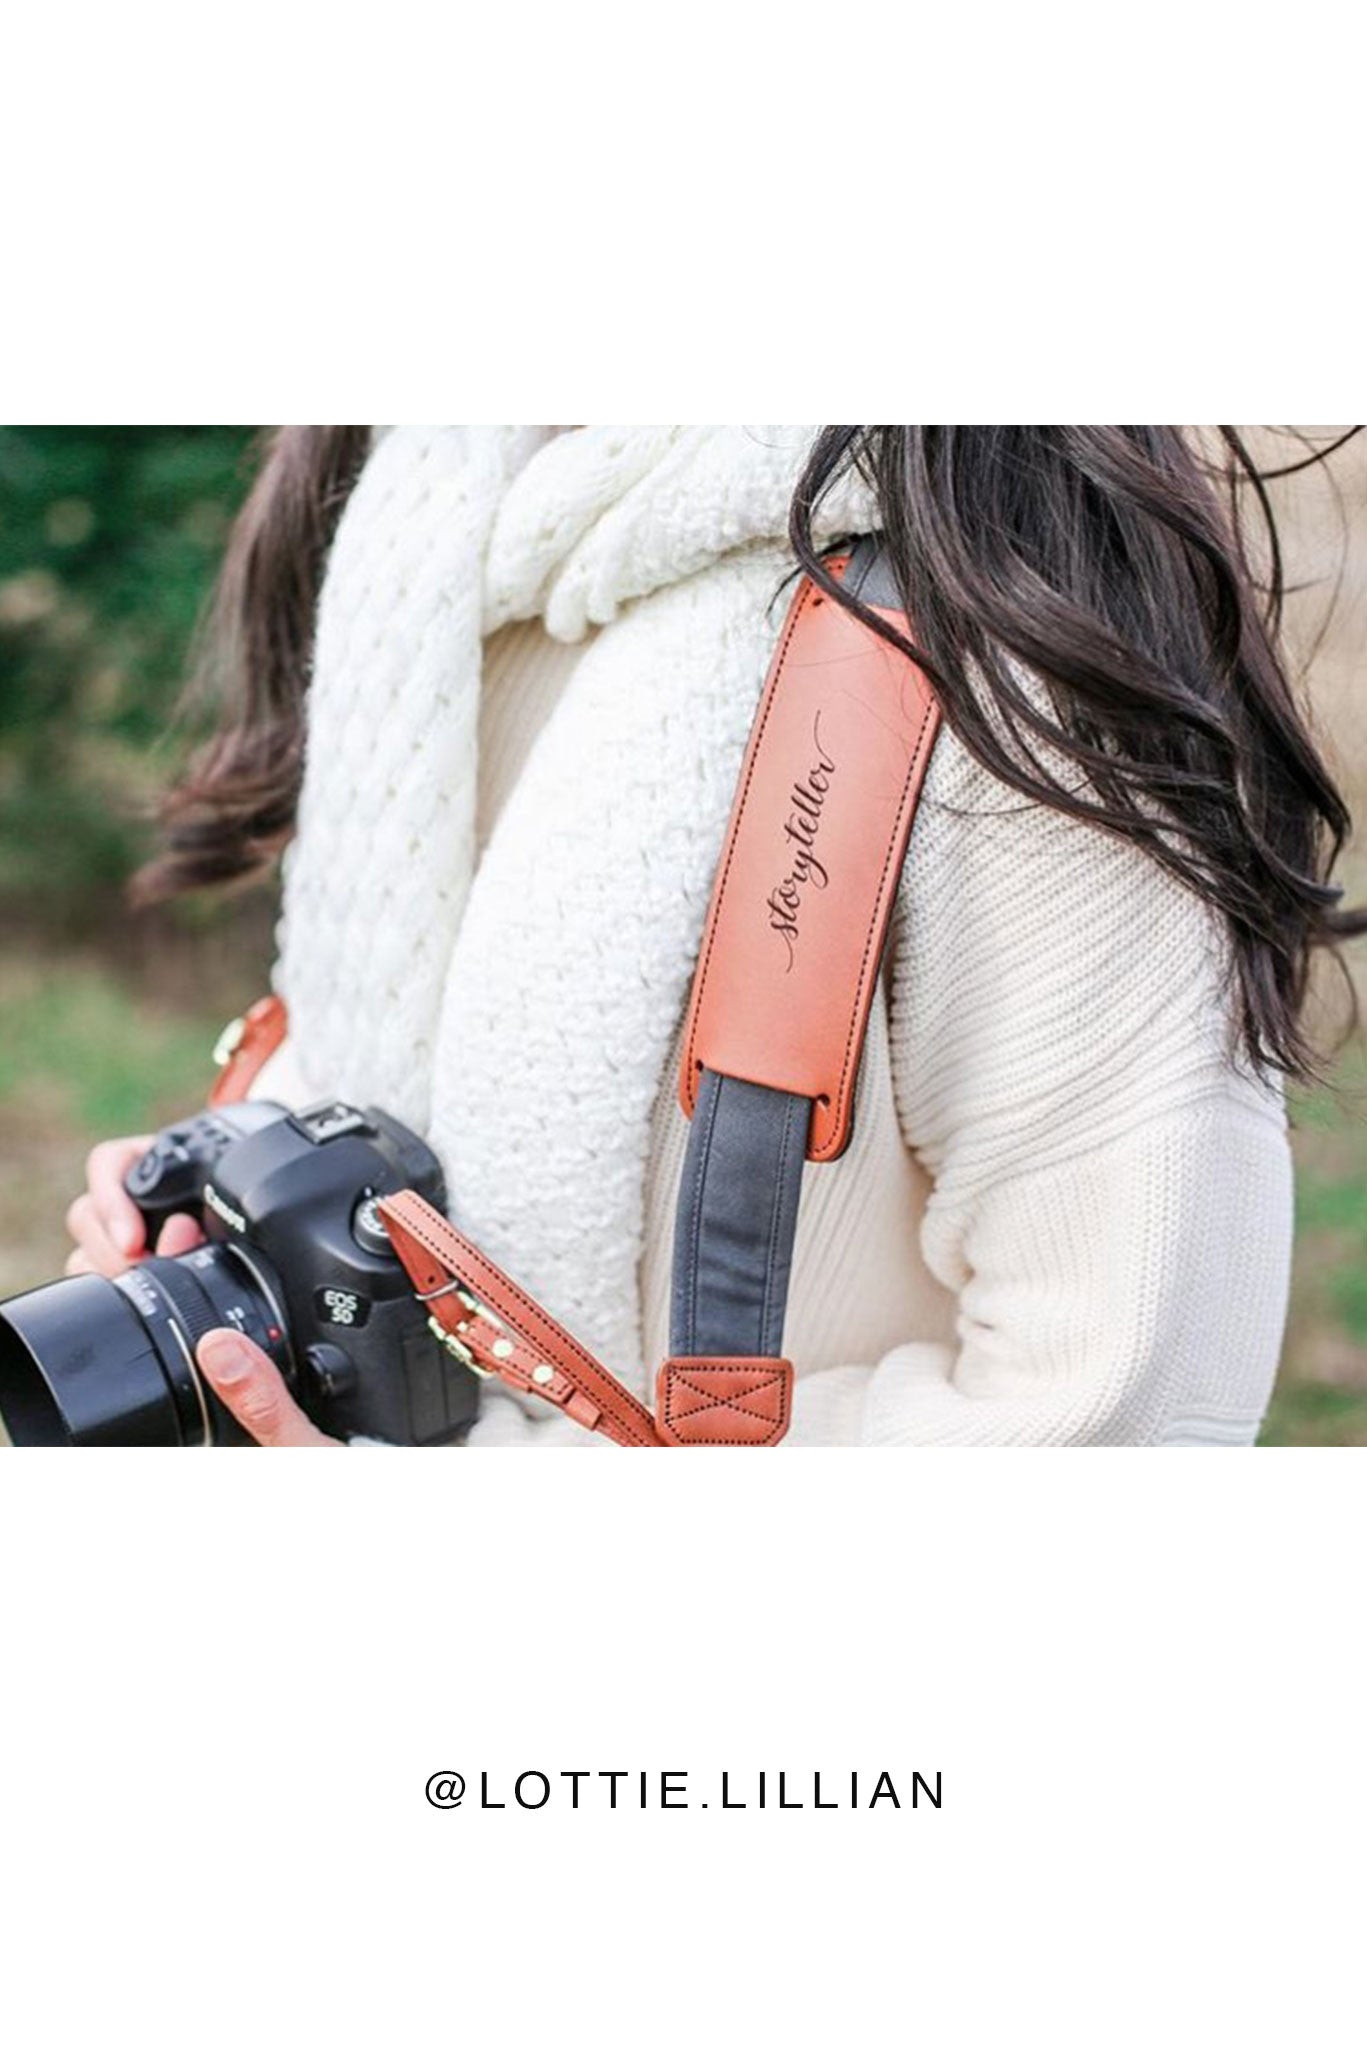 "FOTO | ""Storyteller"" Fotostrap - this genuine leather camera strap is available in a wide variety of colors, making it the perfect photographer gift!"